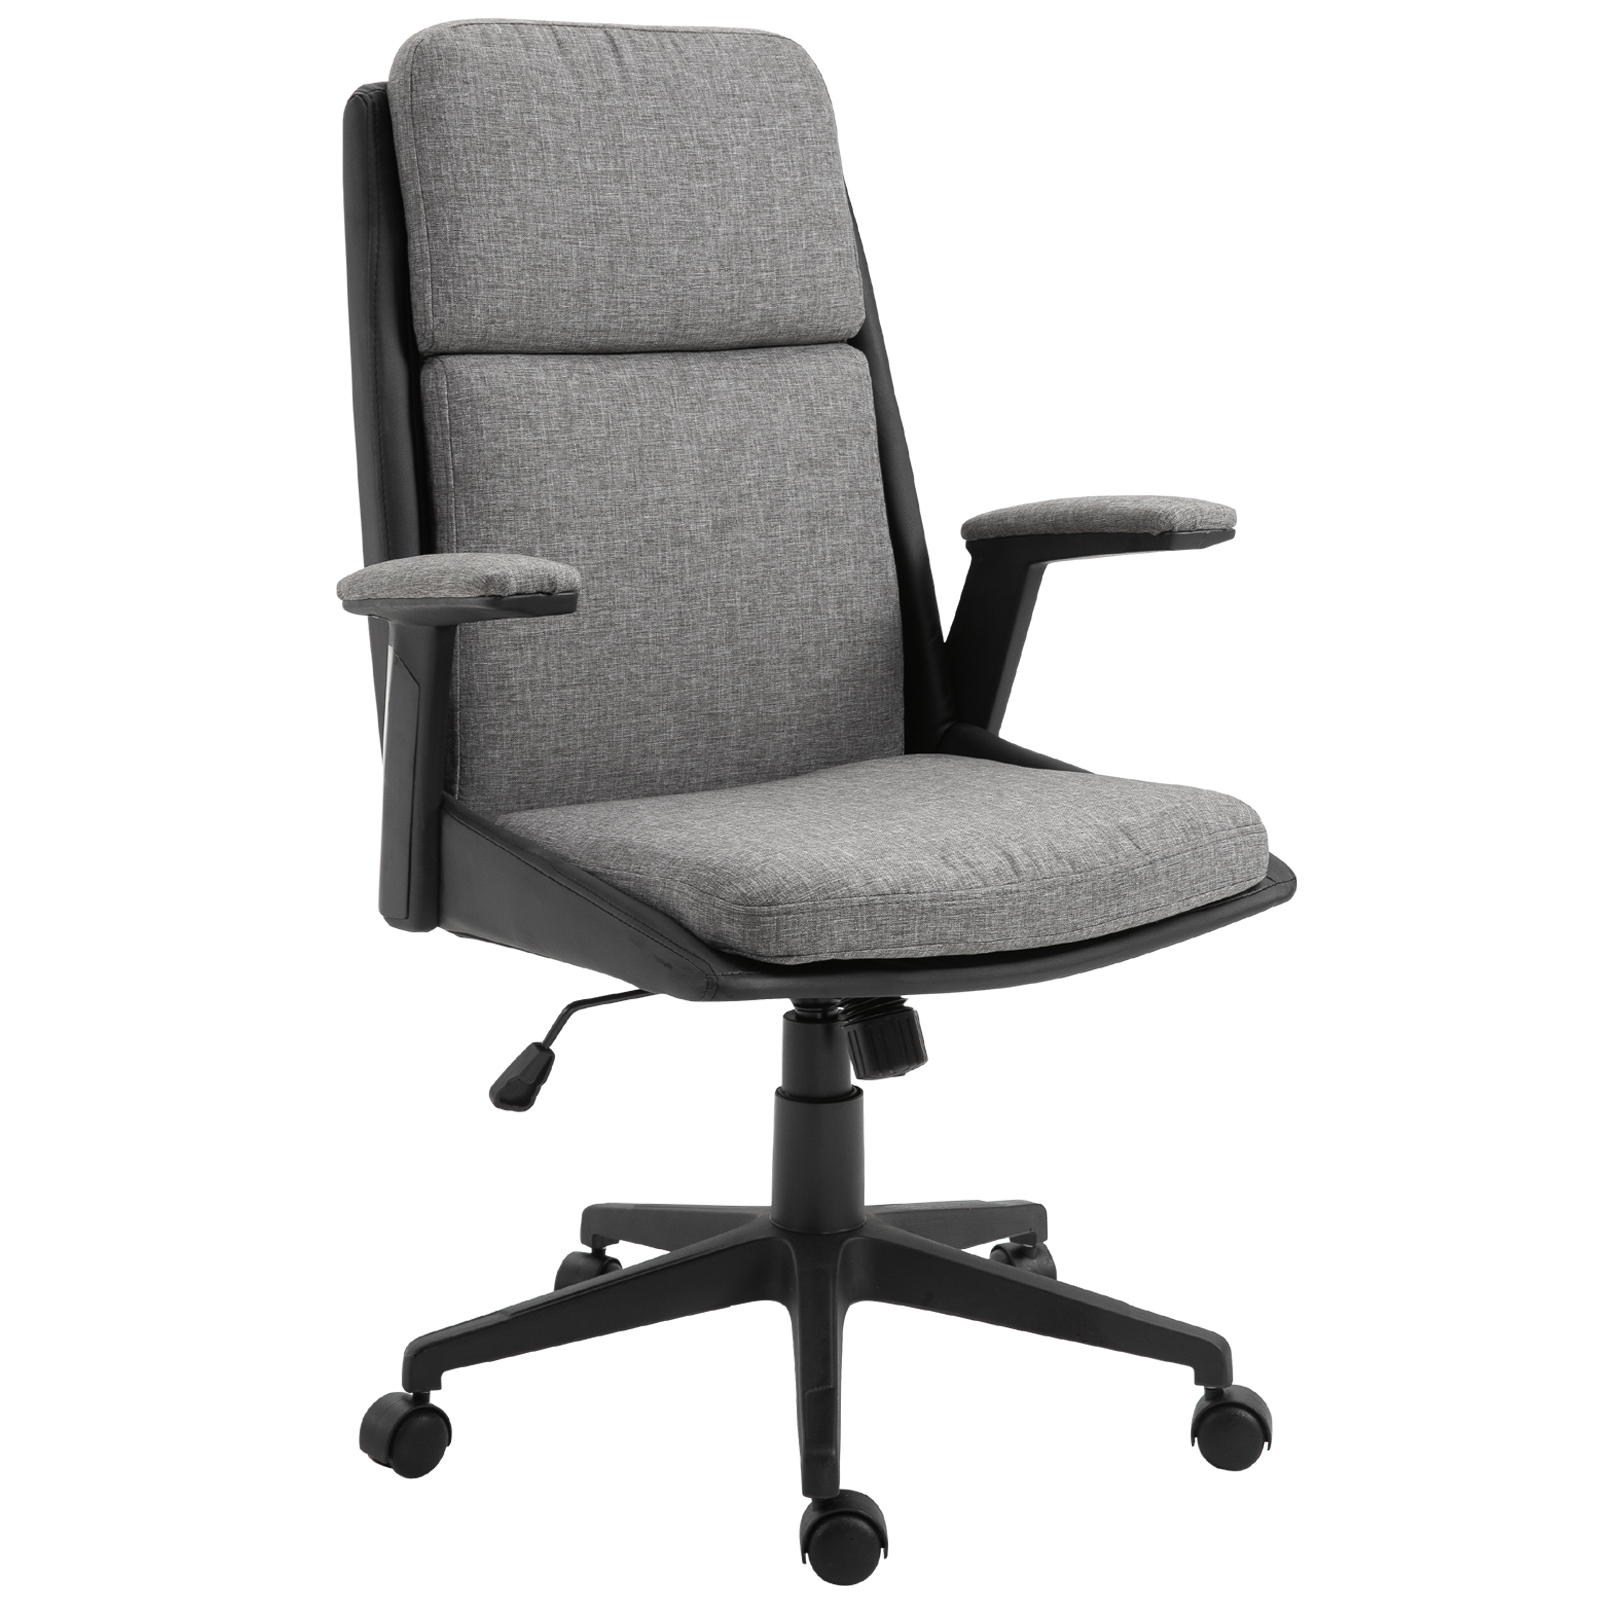 Image of: Vinsetto High Back Office Chair Computer Swivel Rolling Task Chair With Height Adjustable Comfortable With Armrests Black Deep Grey Walmart Com Walmart Com